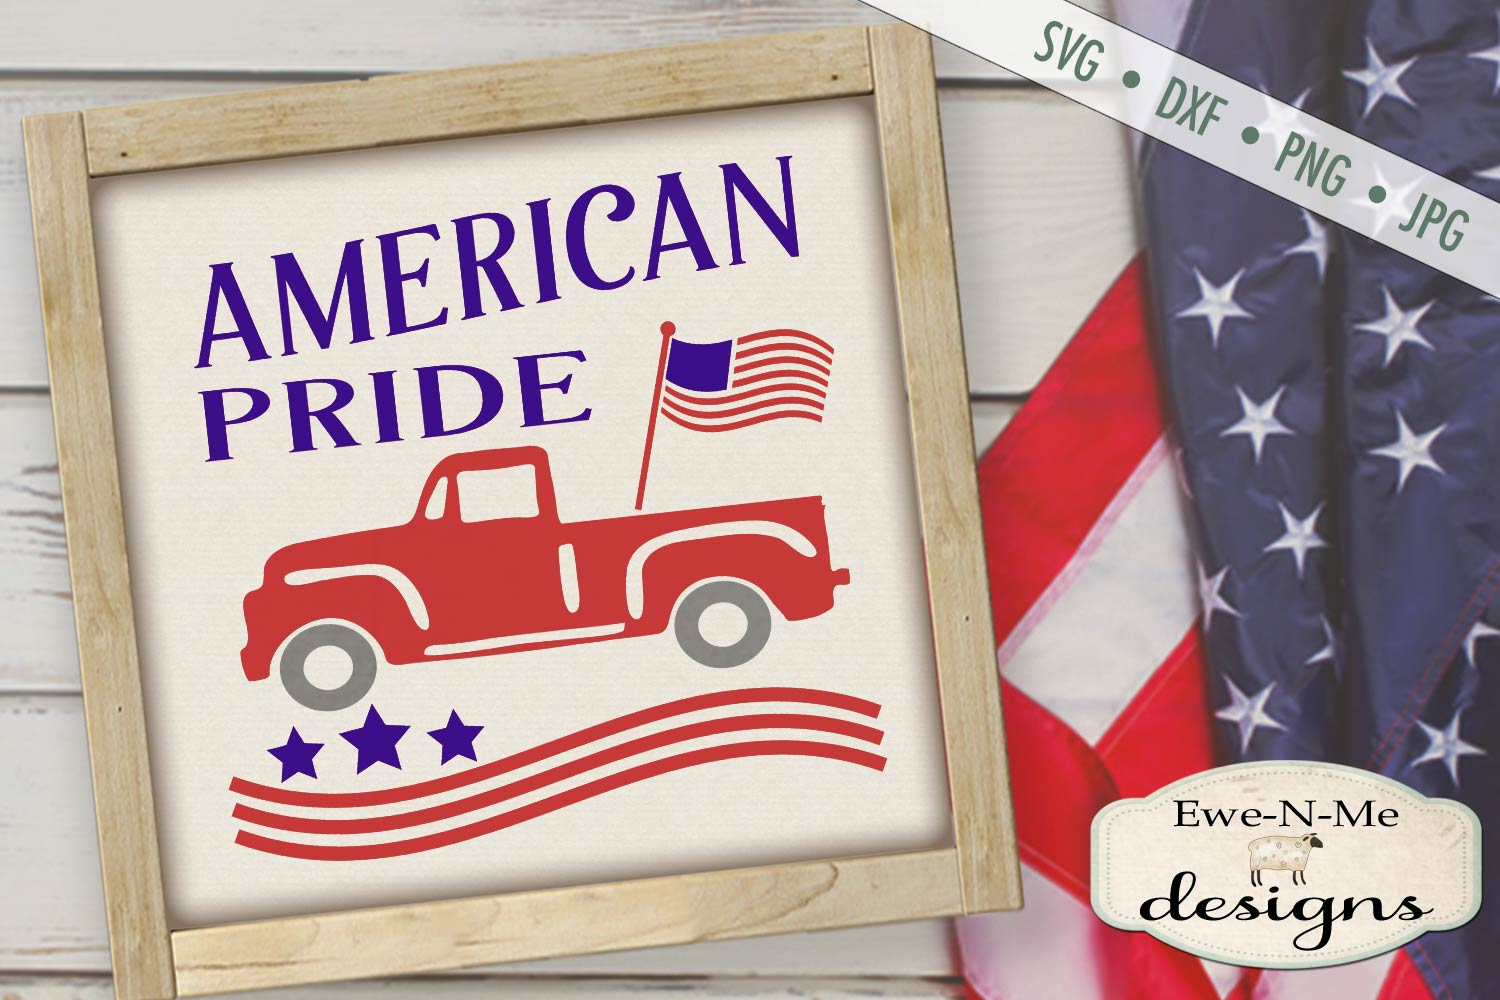 American Pride - Vintage Truck - Flag 4th of July - SVG DXF example image 1